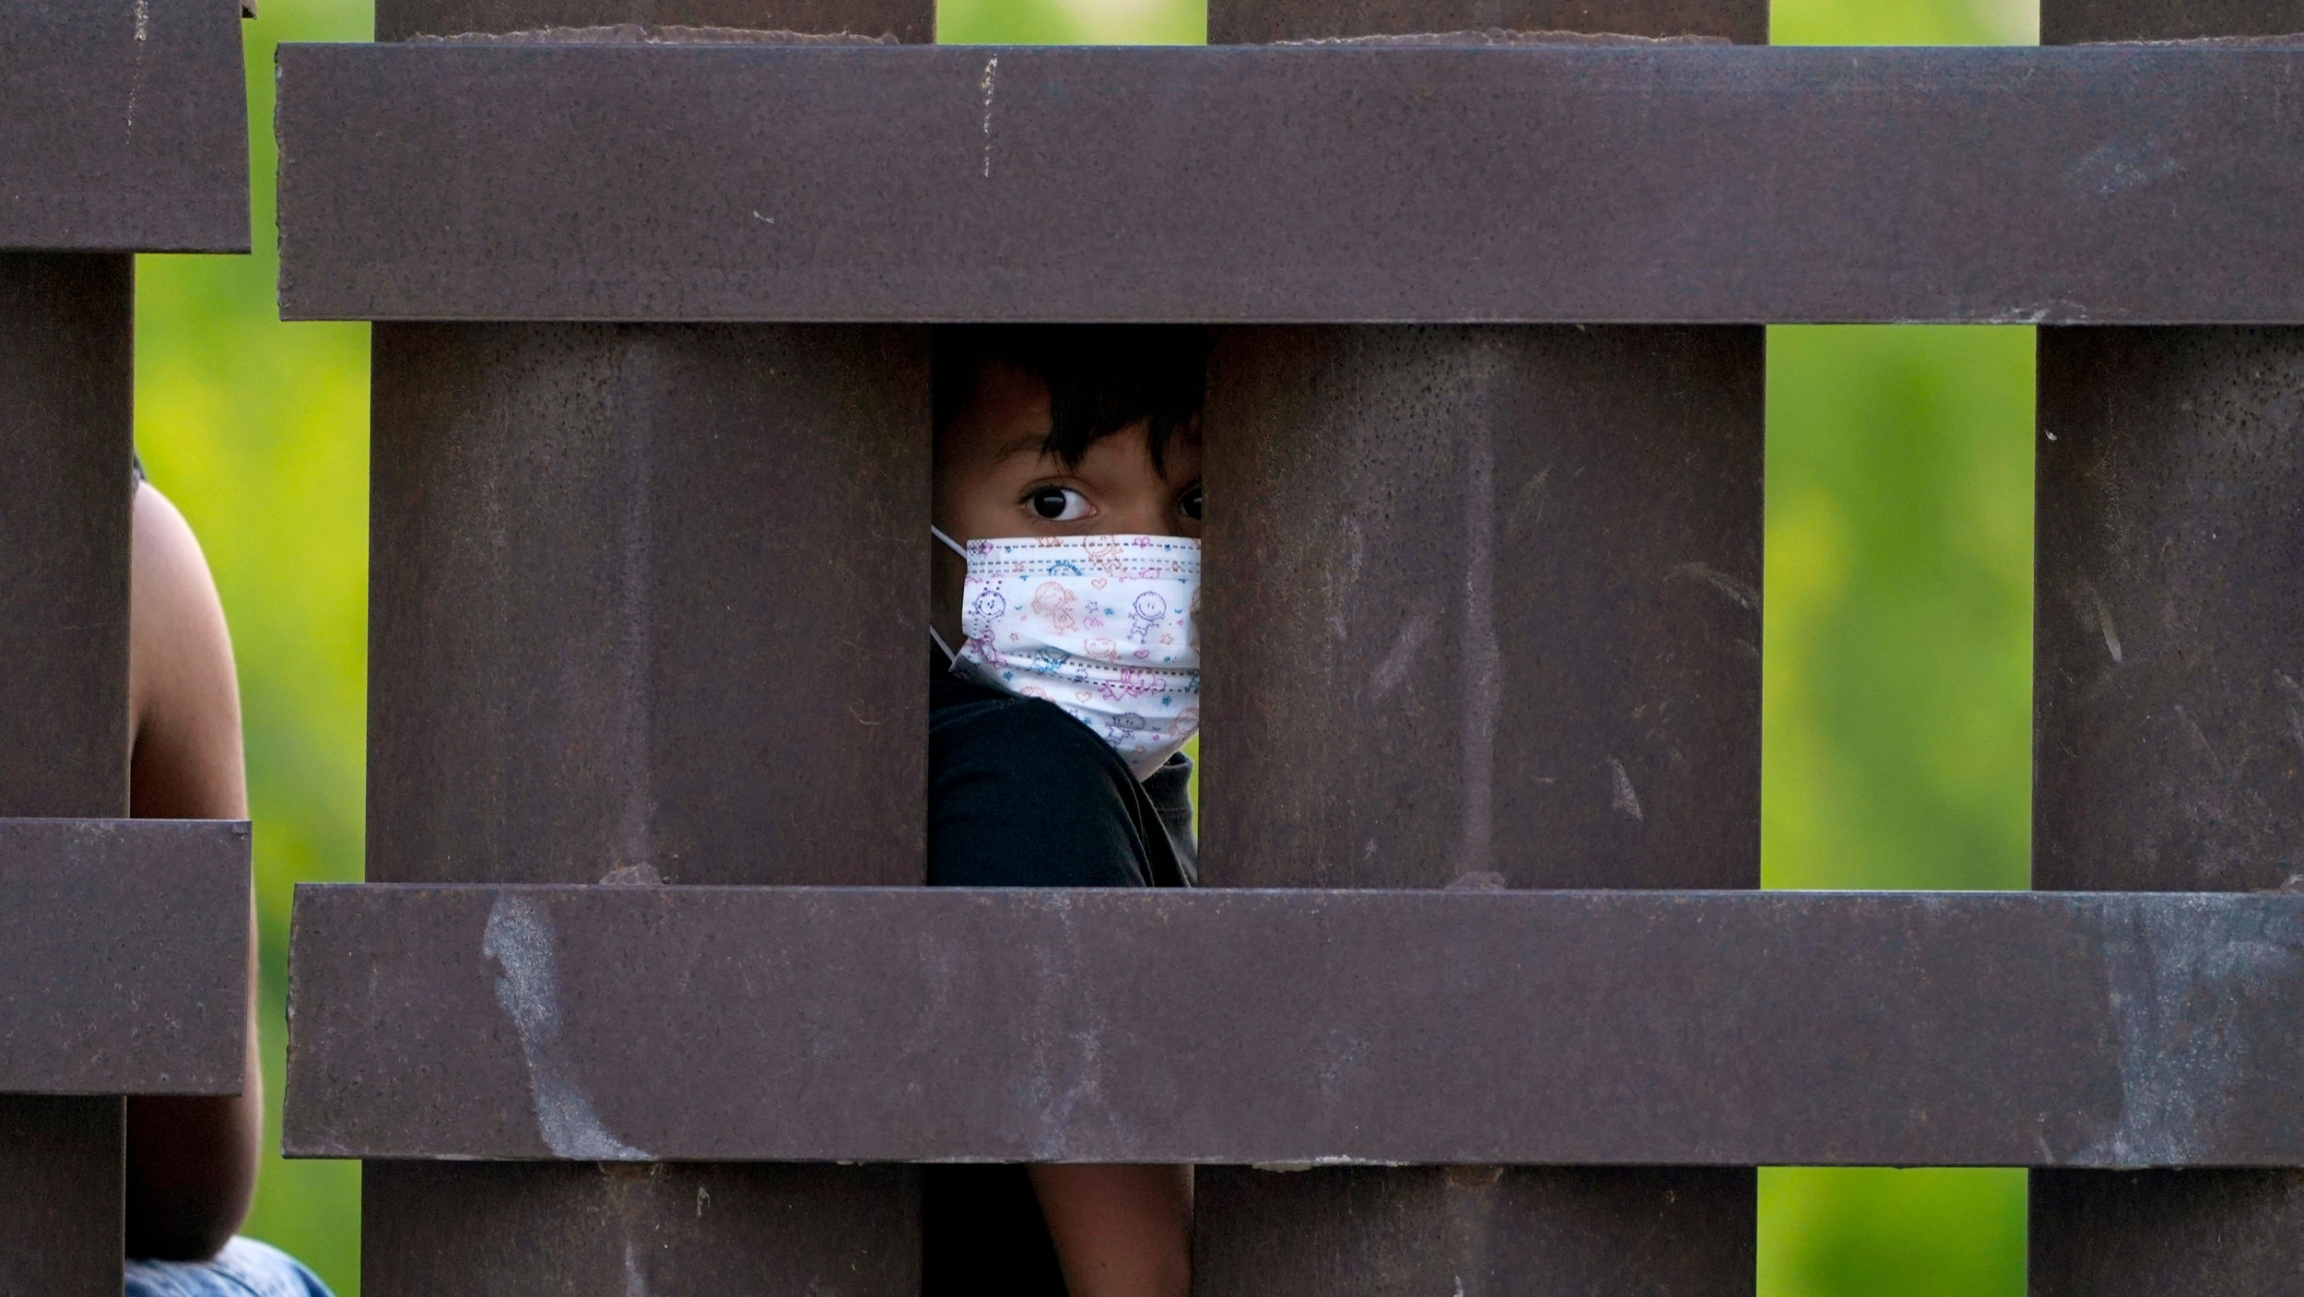 A small child is shown wearing a protective face mask and looking through the large medal polls of the US-Mexico border fence.